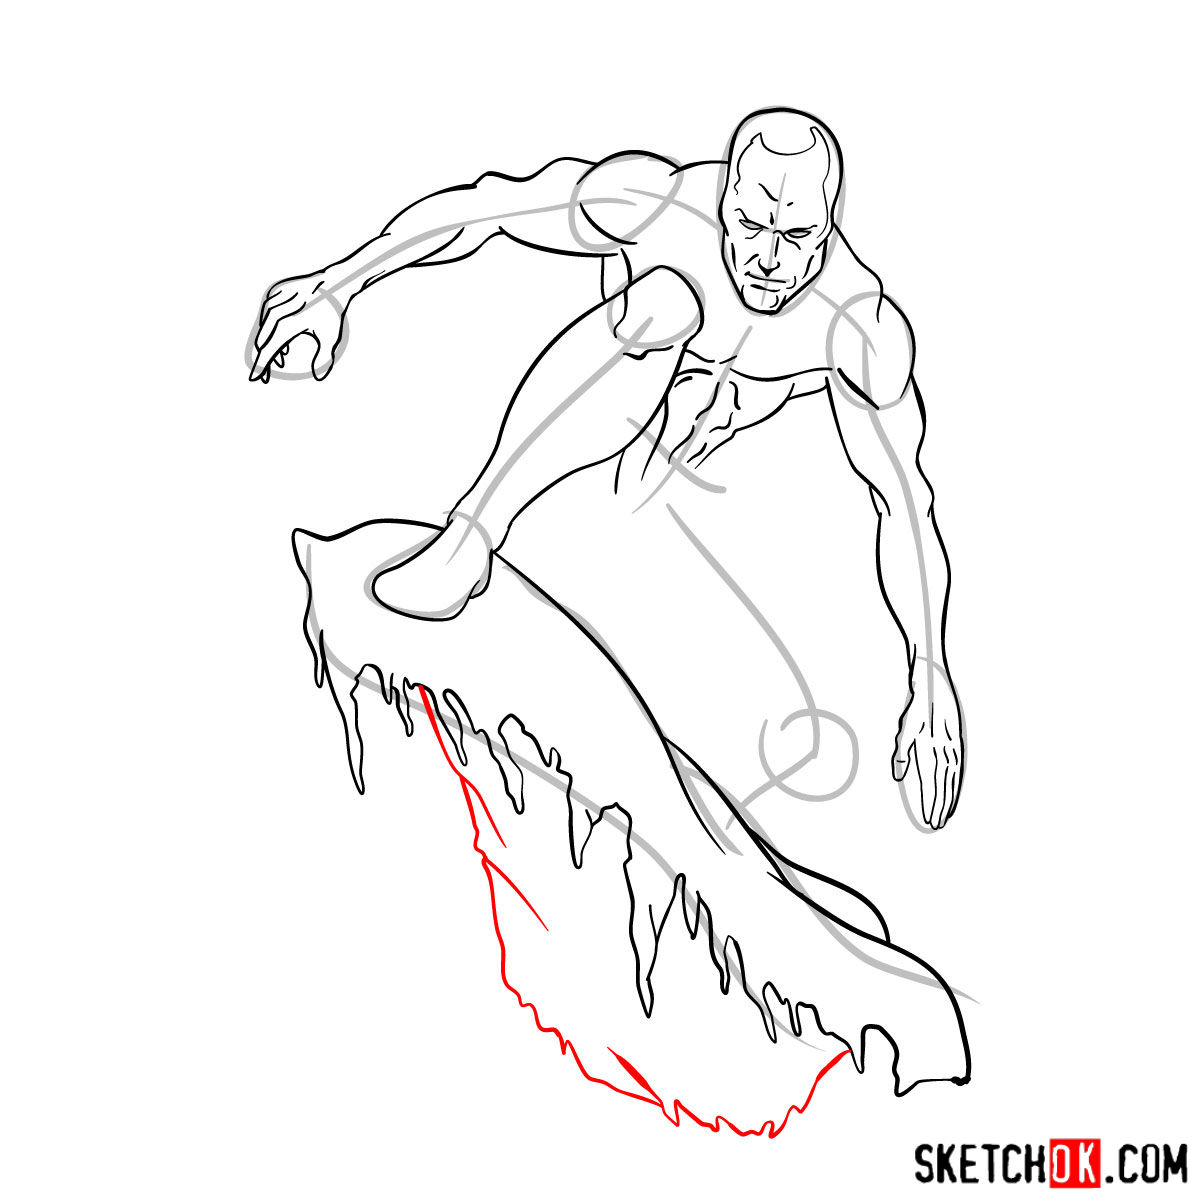 How to draw Iceman - step by step drawing tutorial - step 11